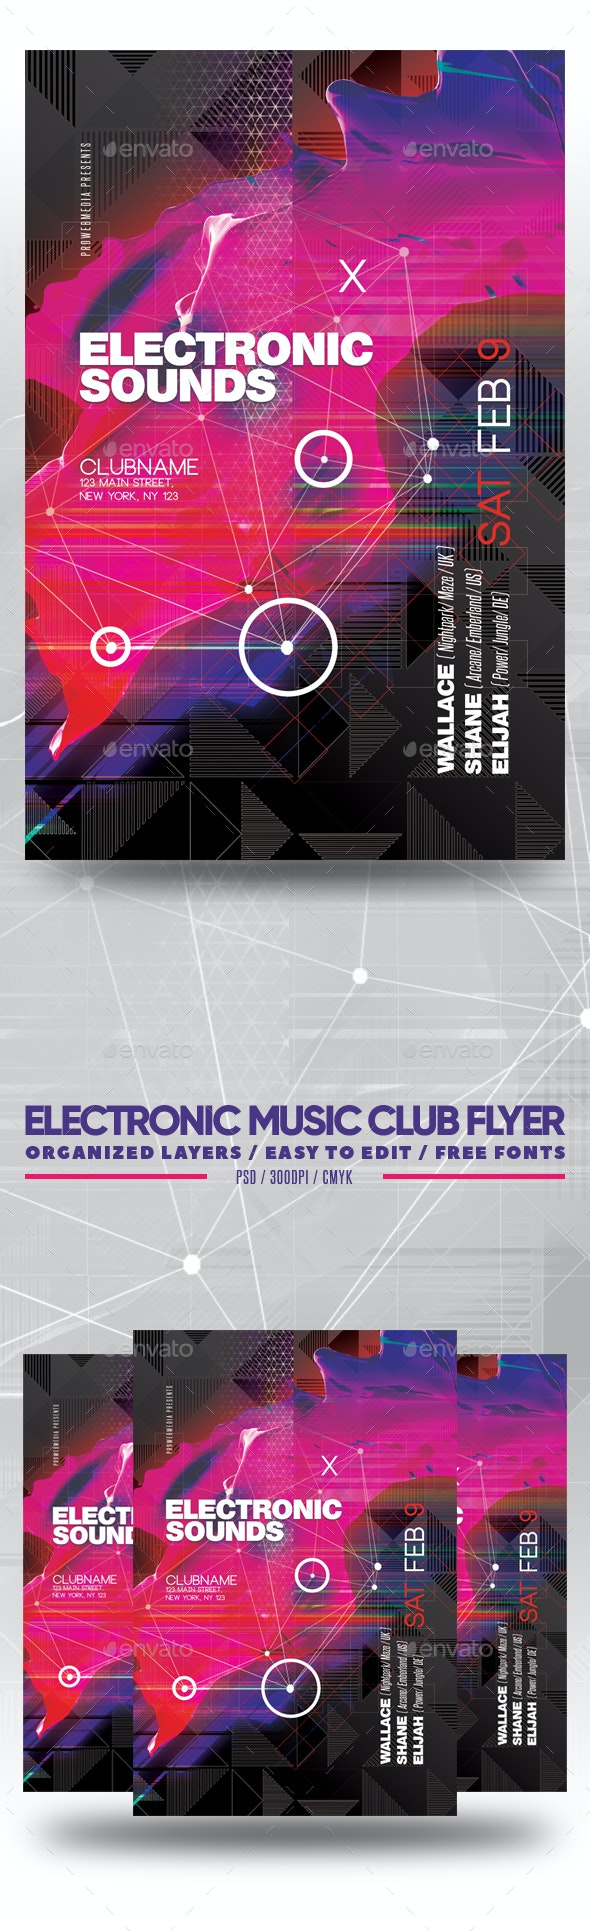 Electronic Music Club Flyer - Clubs & Parties Events